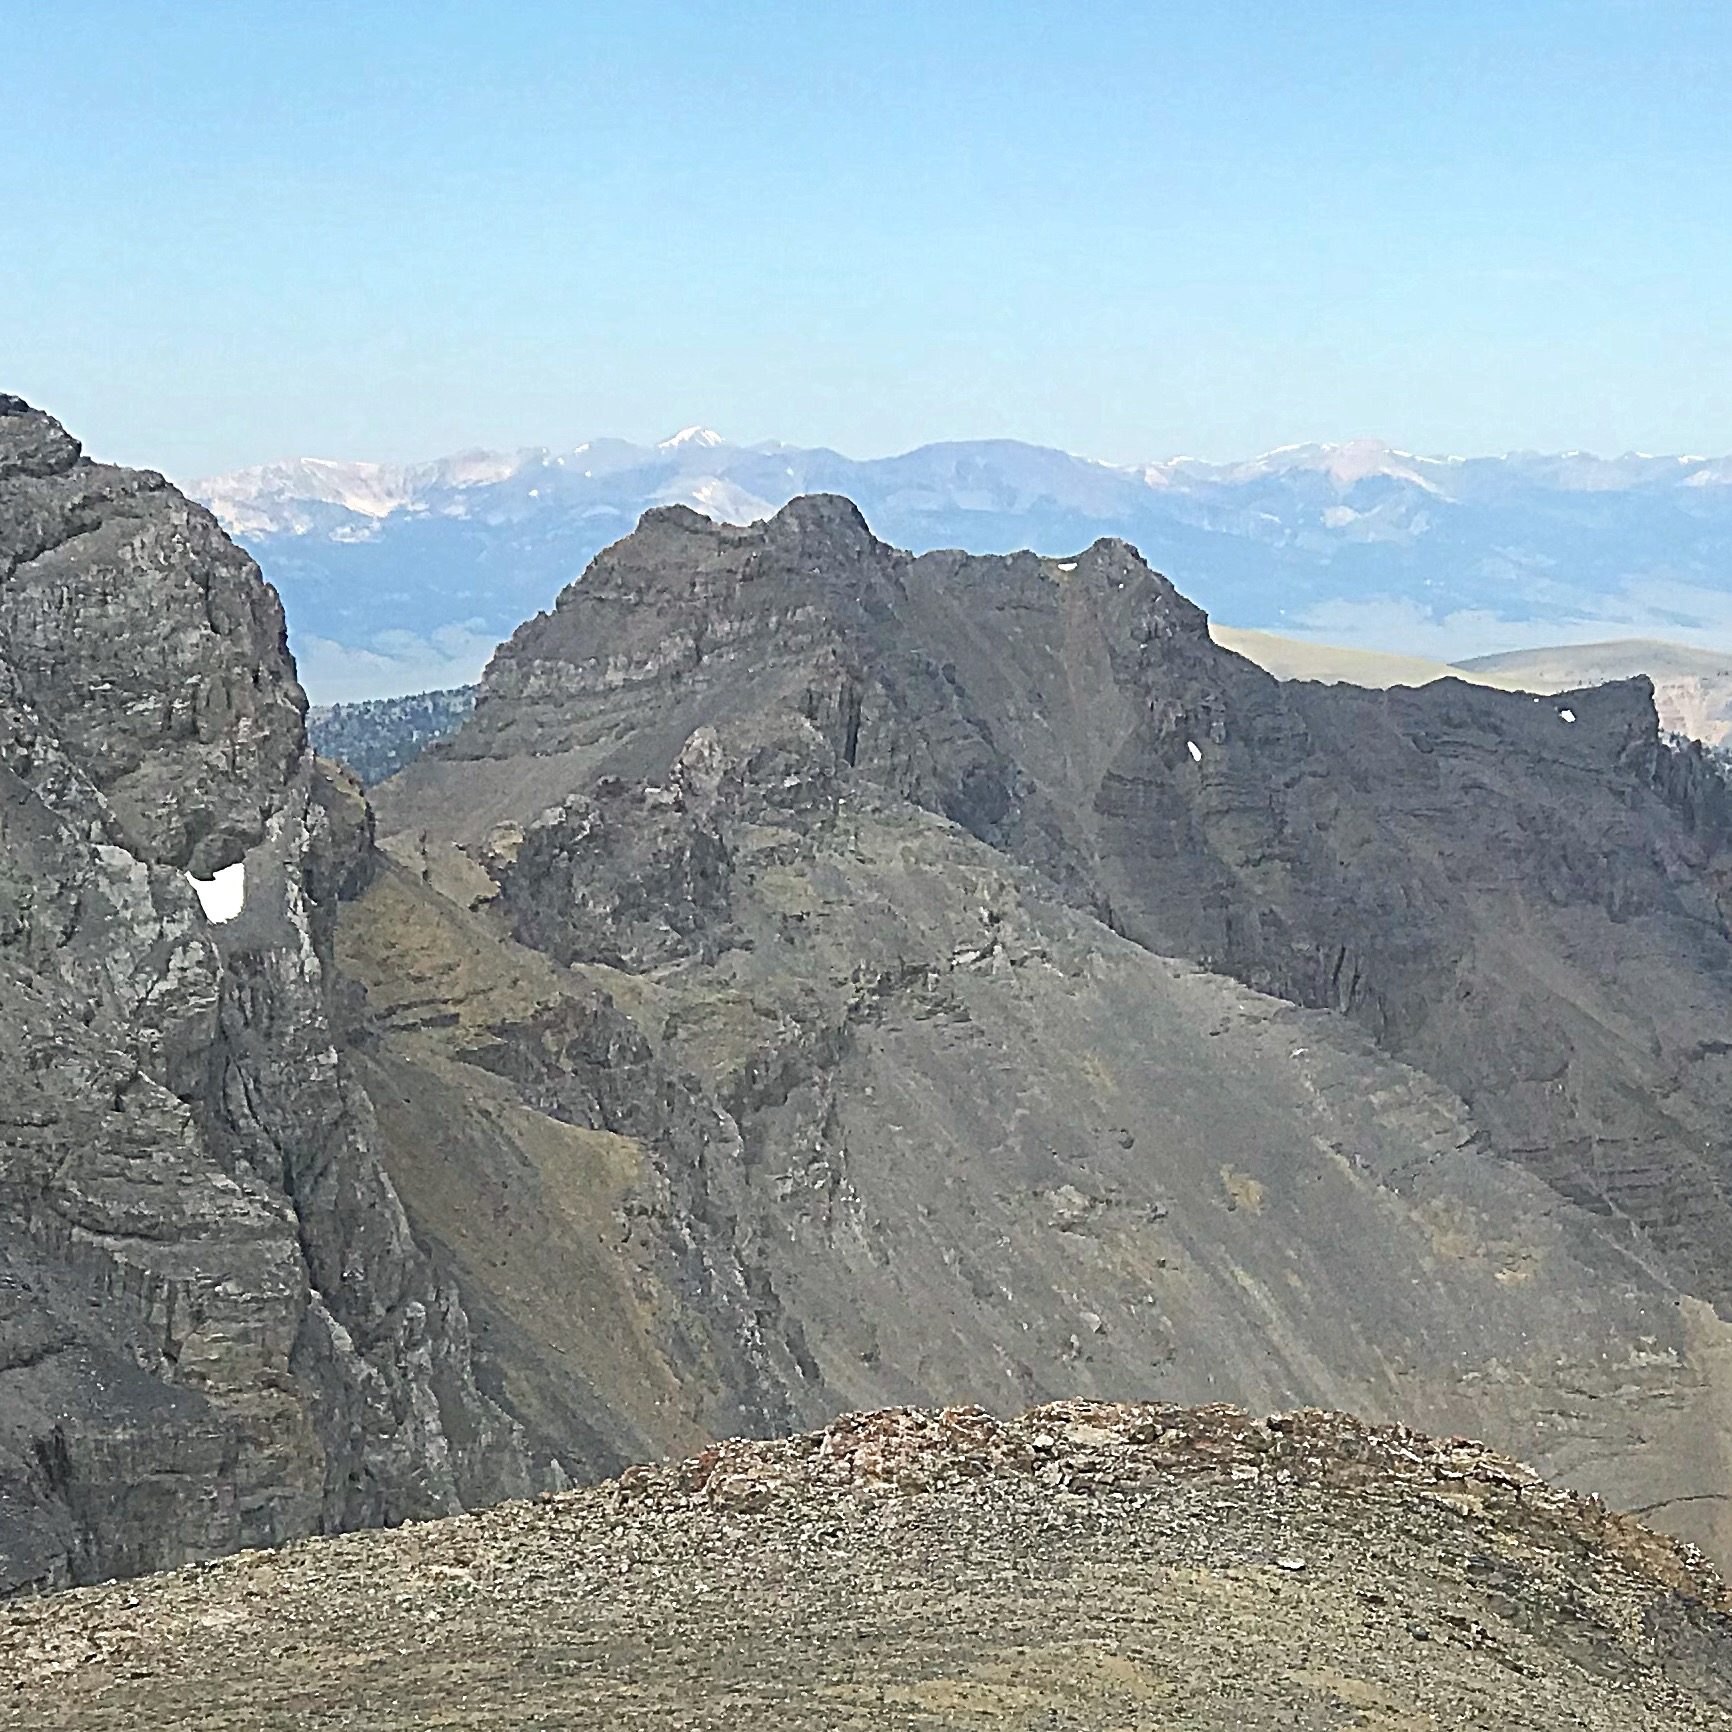 Italian Peak from the Scott Peak/Huhs Horn saddle.